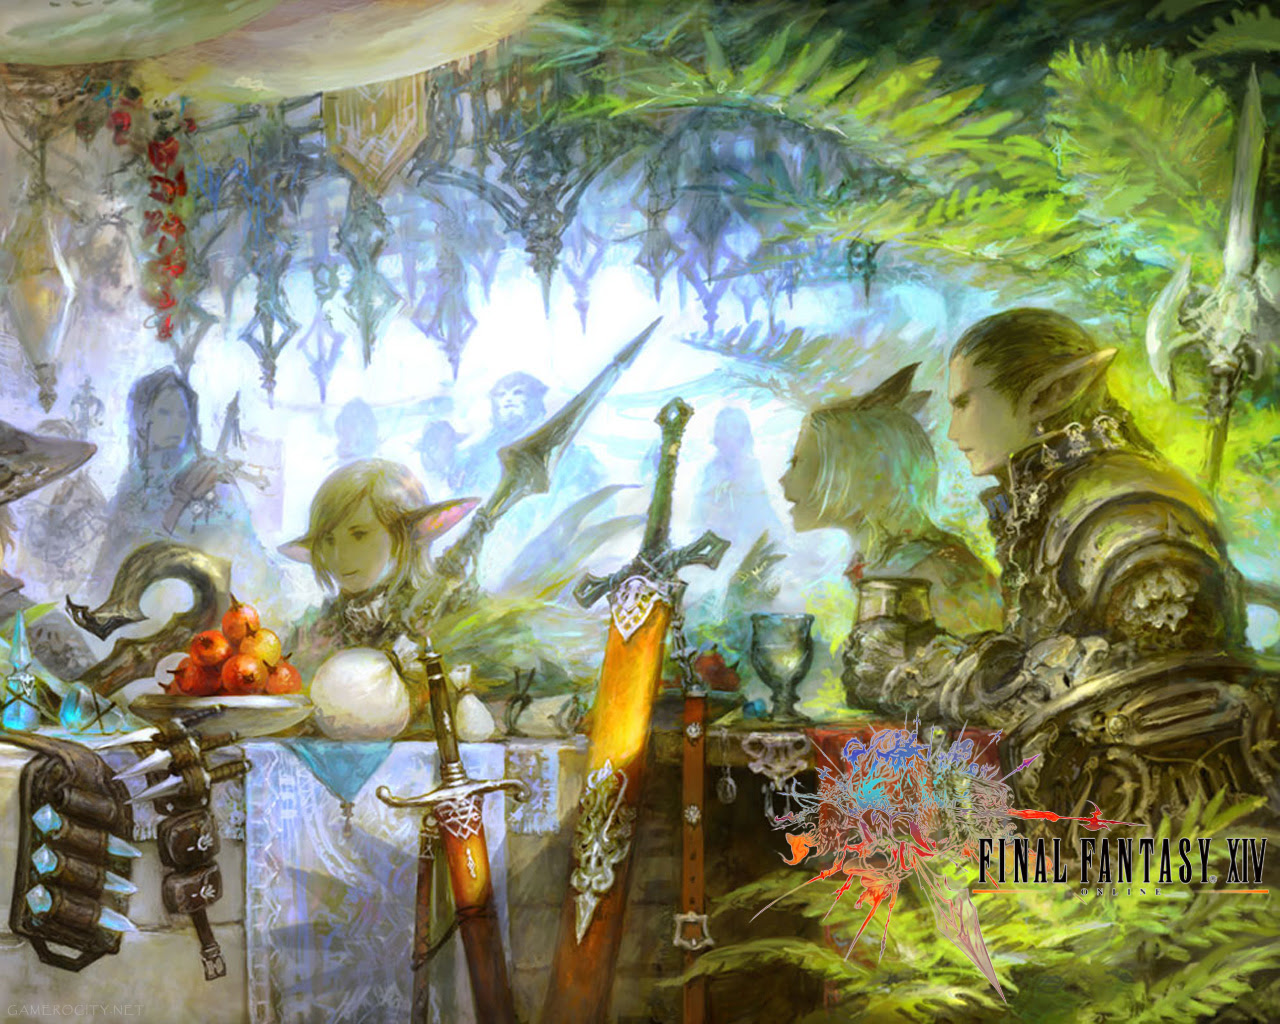 Final Fantasy Xiv A Realm Reborn New Wallpapers For Pc And Best